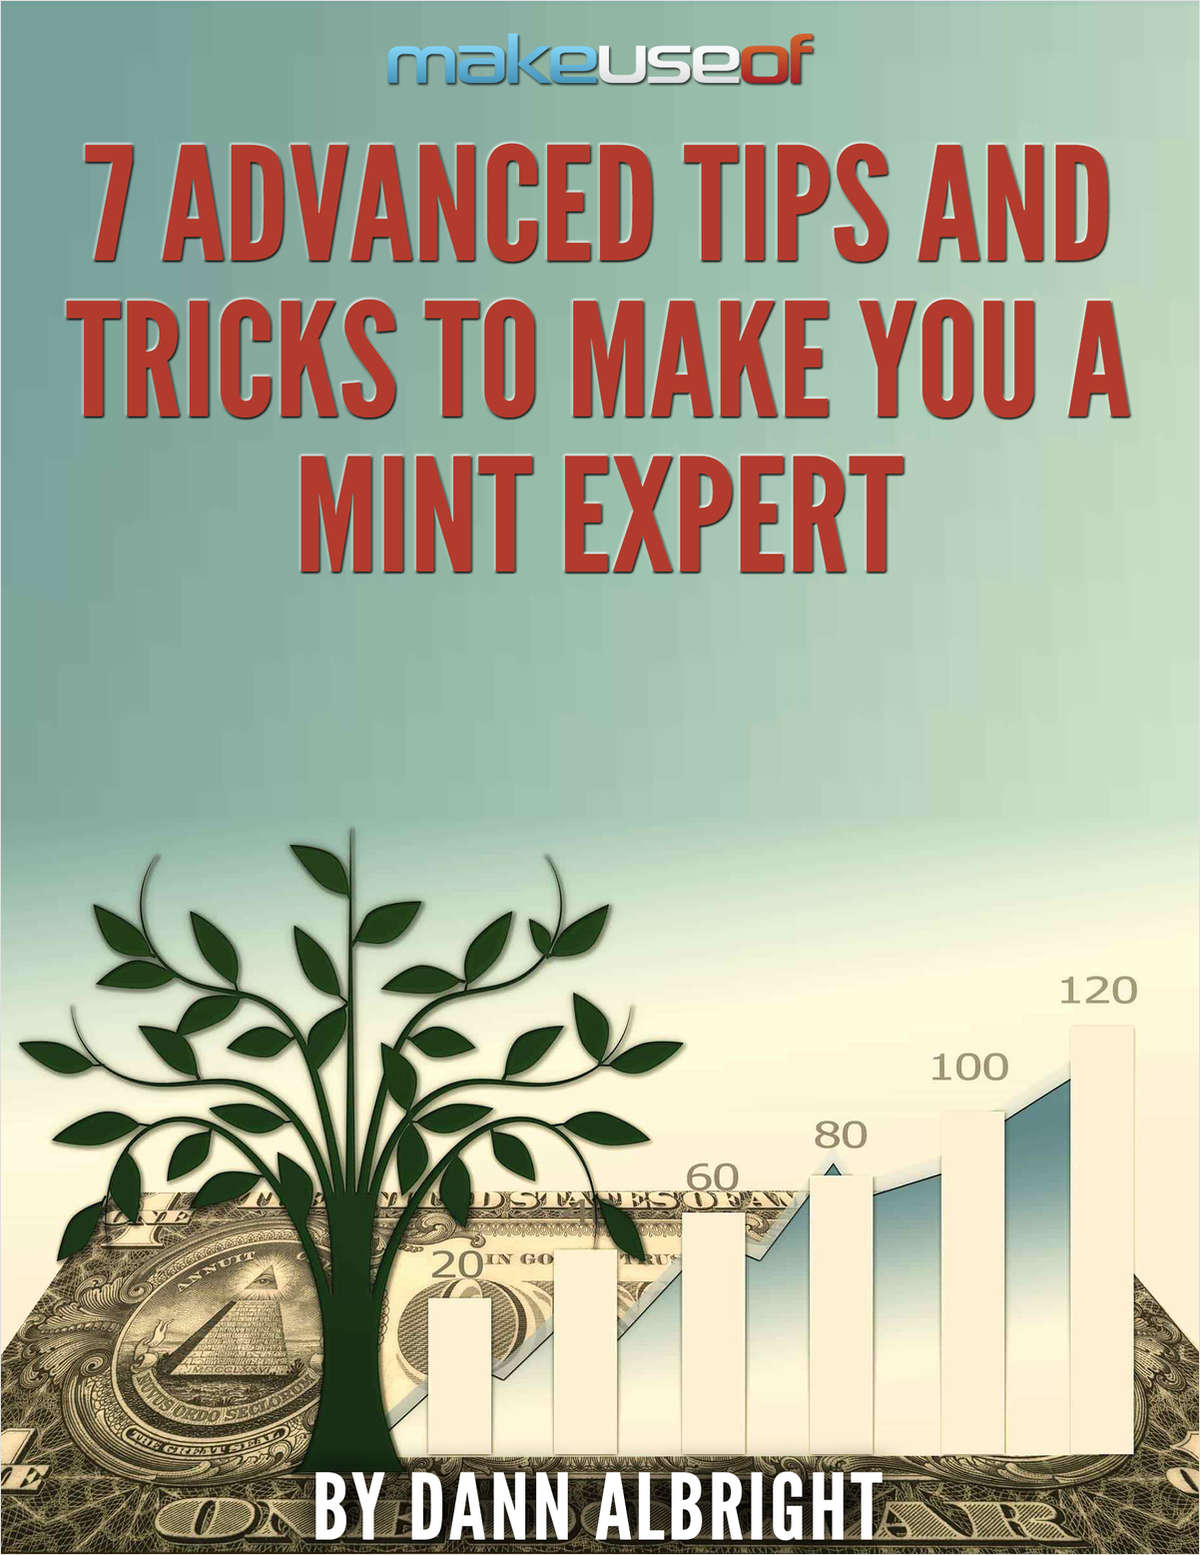 7 Advanced Tips and Tricks to Make You a Mint Expert